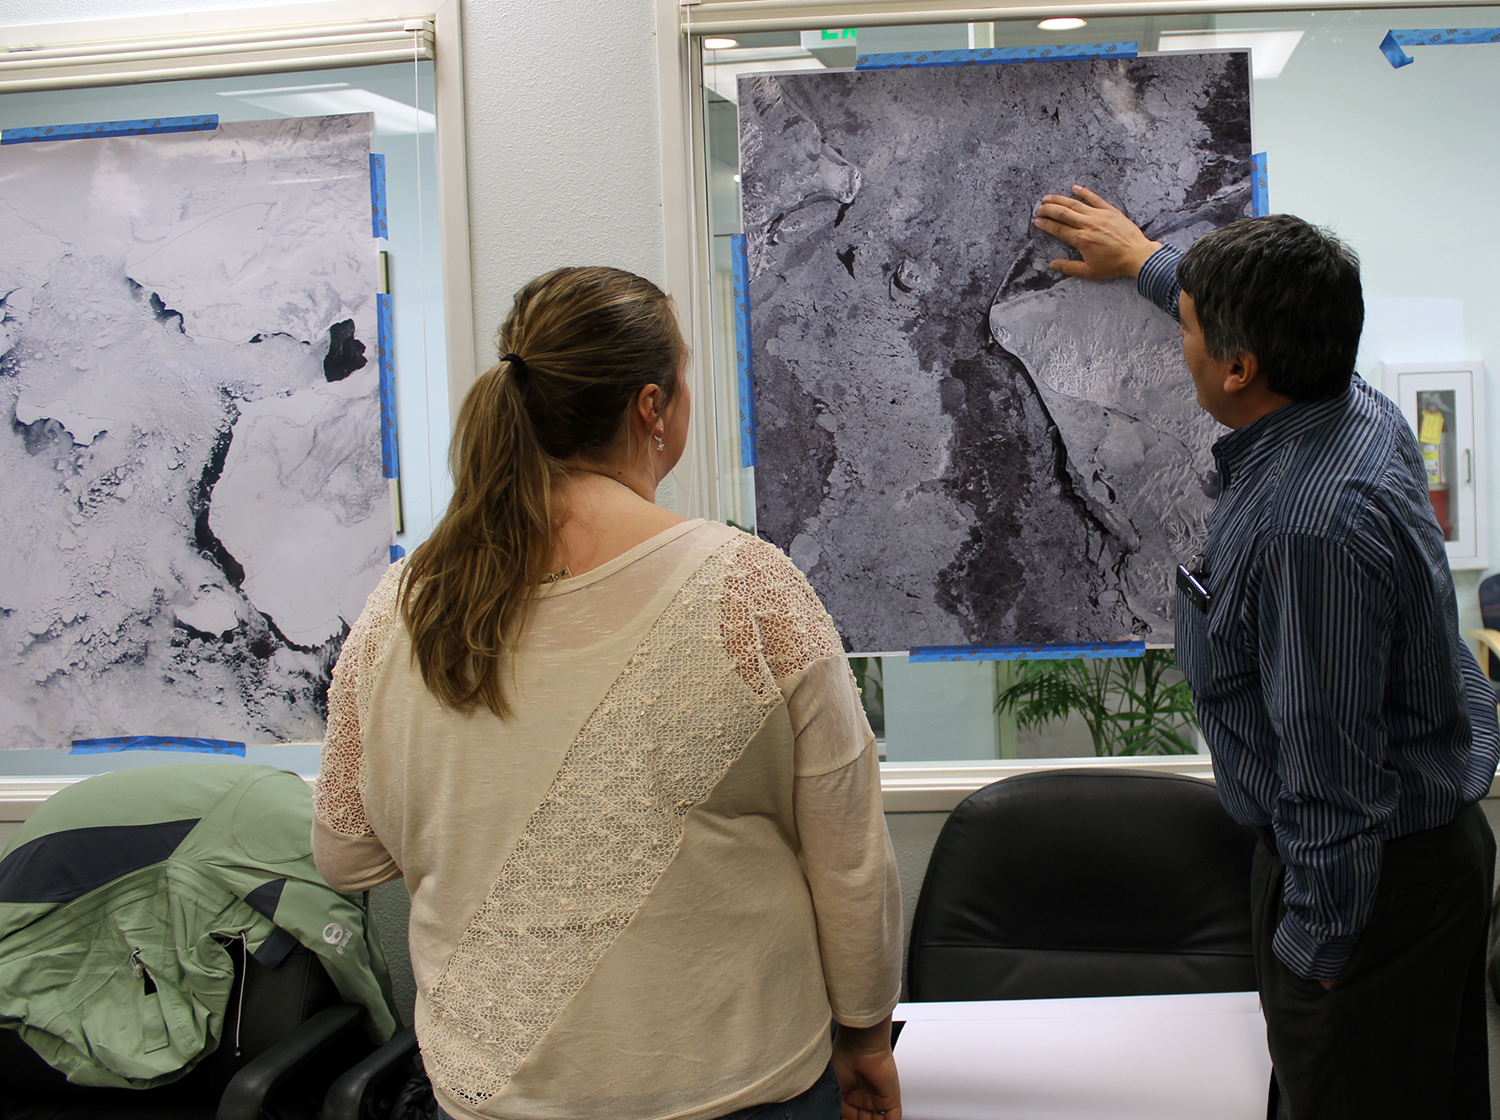 Lewis Brower, Sea Ice expert from Barrow, Alaska, shares his knowledge with Rebecca Legatt from the National Weather Service's Anchorage Ice Desk. Combining knowledge, expertise, and data can greatly enhance the understanding of sea ice. Credit: P. Pulsifer